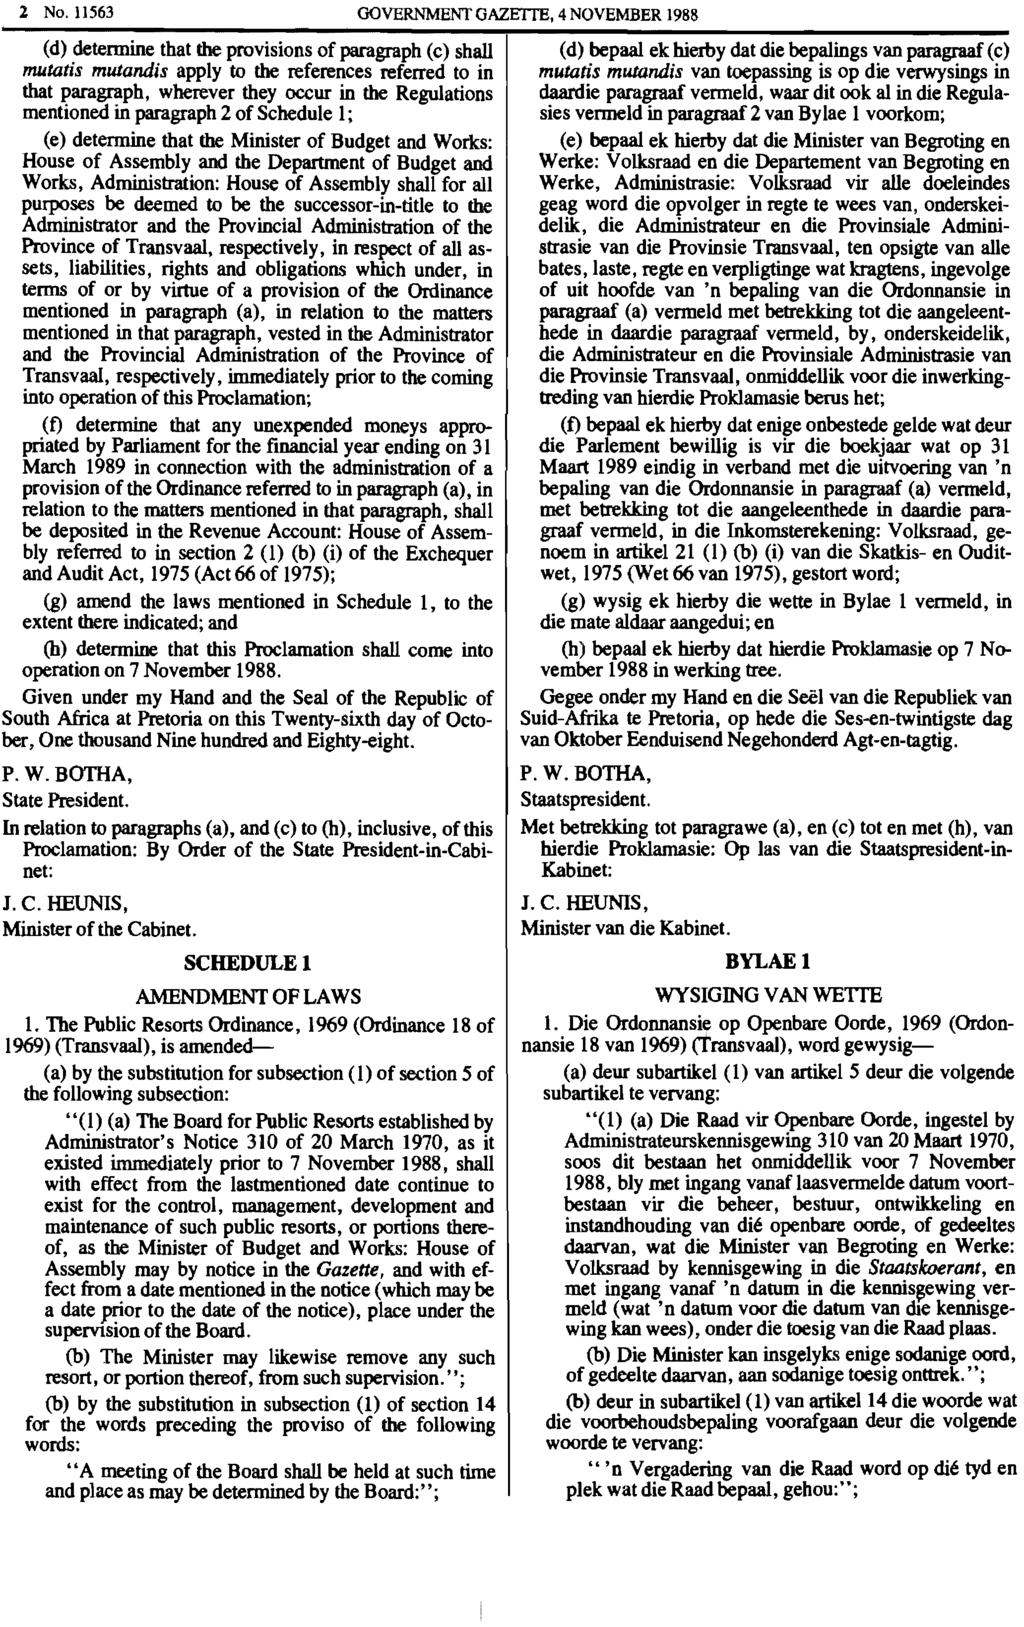 2 No. 11563 GOVERNMENT GAZEITE, 4 NOVEMBER 1988 (d) determine that the provisions of paragraph (c) shall mutatis mutandis apply to the references referred to in that paragraph, wherever they occur in